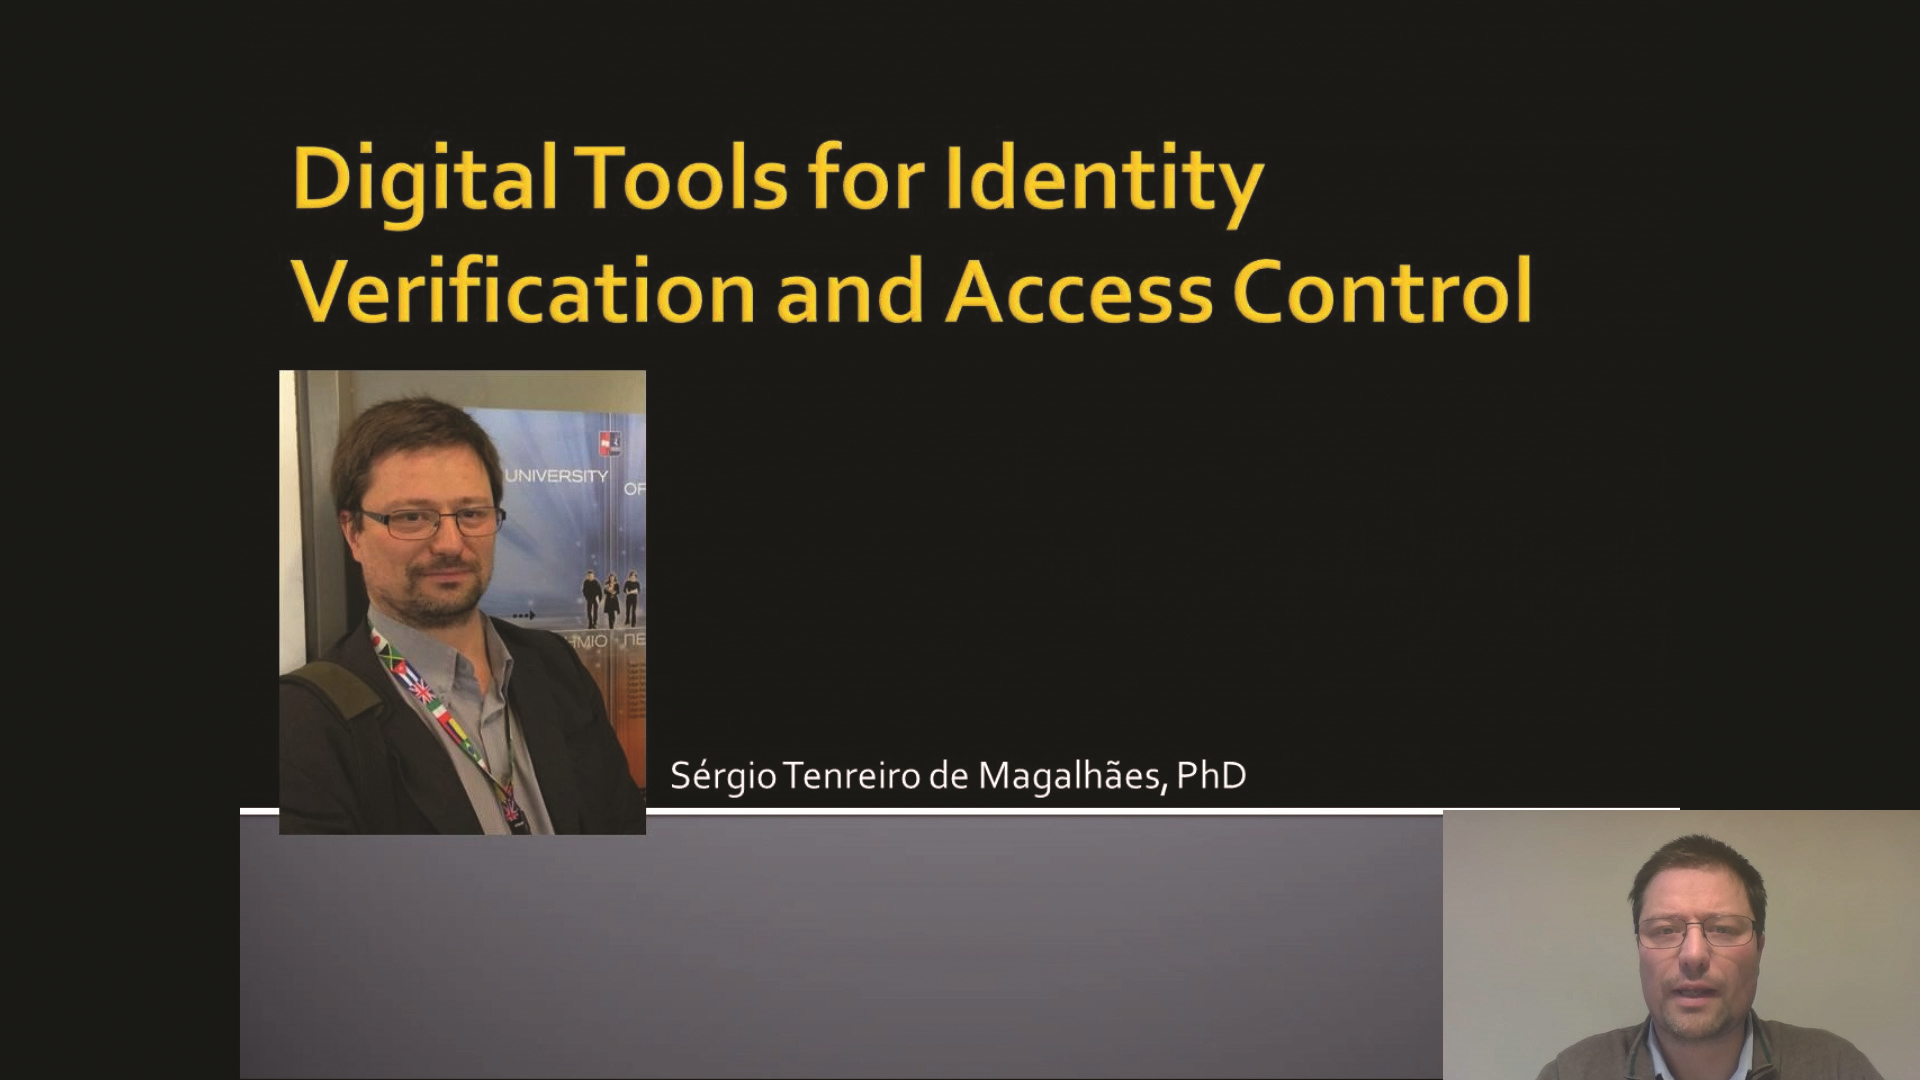 Digital Tools for Identity Verification and Access Control